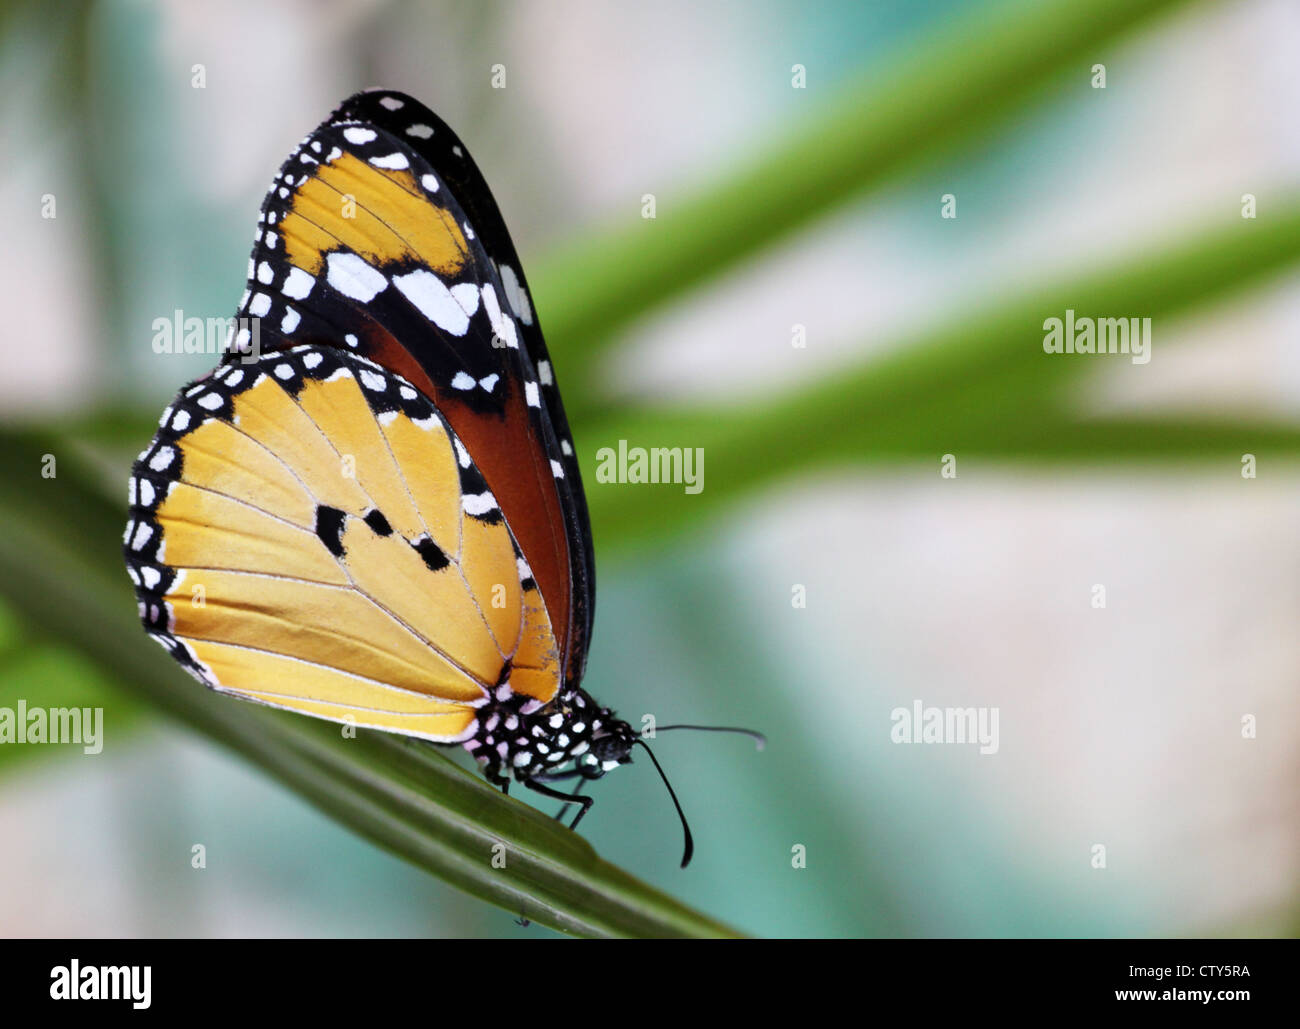 Monarch butterfly on a plant - Stock Image